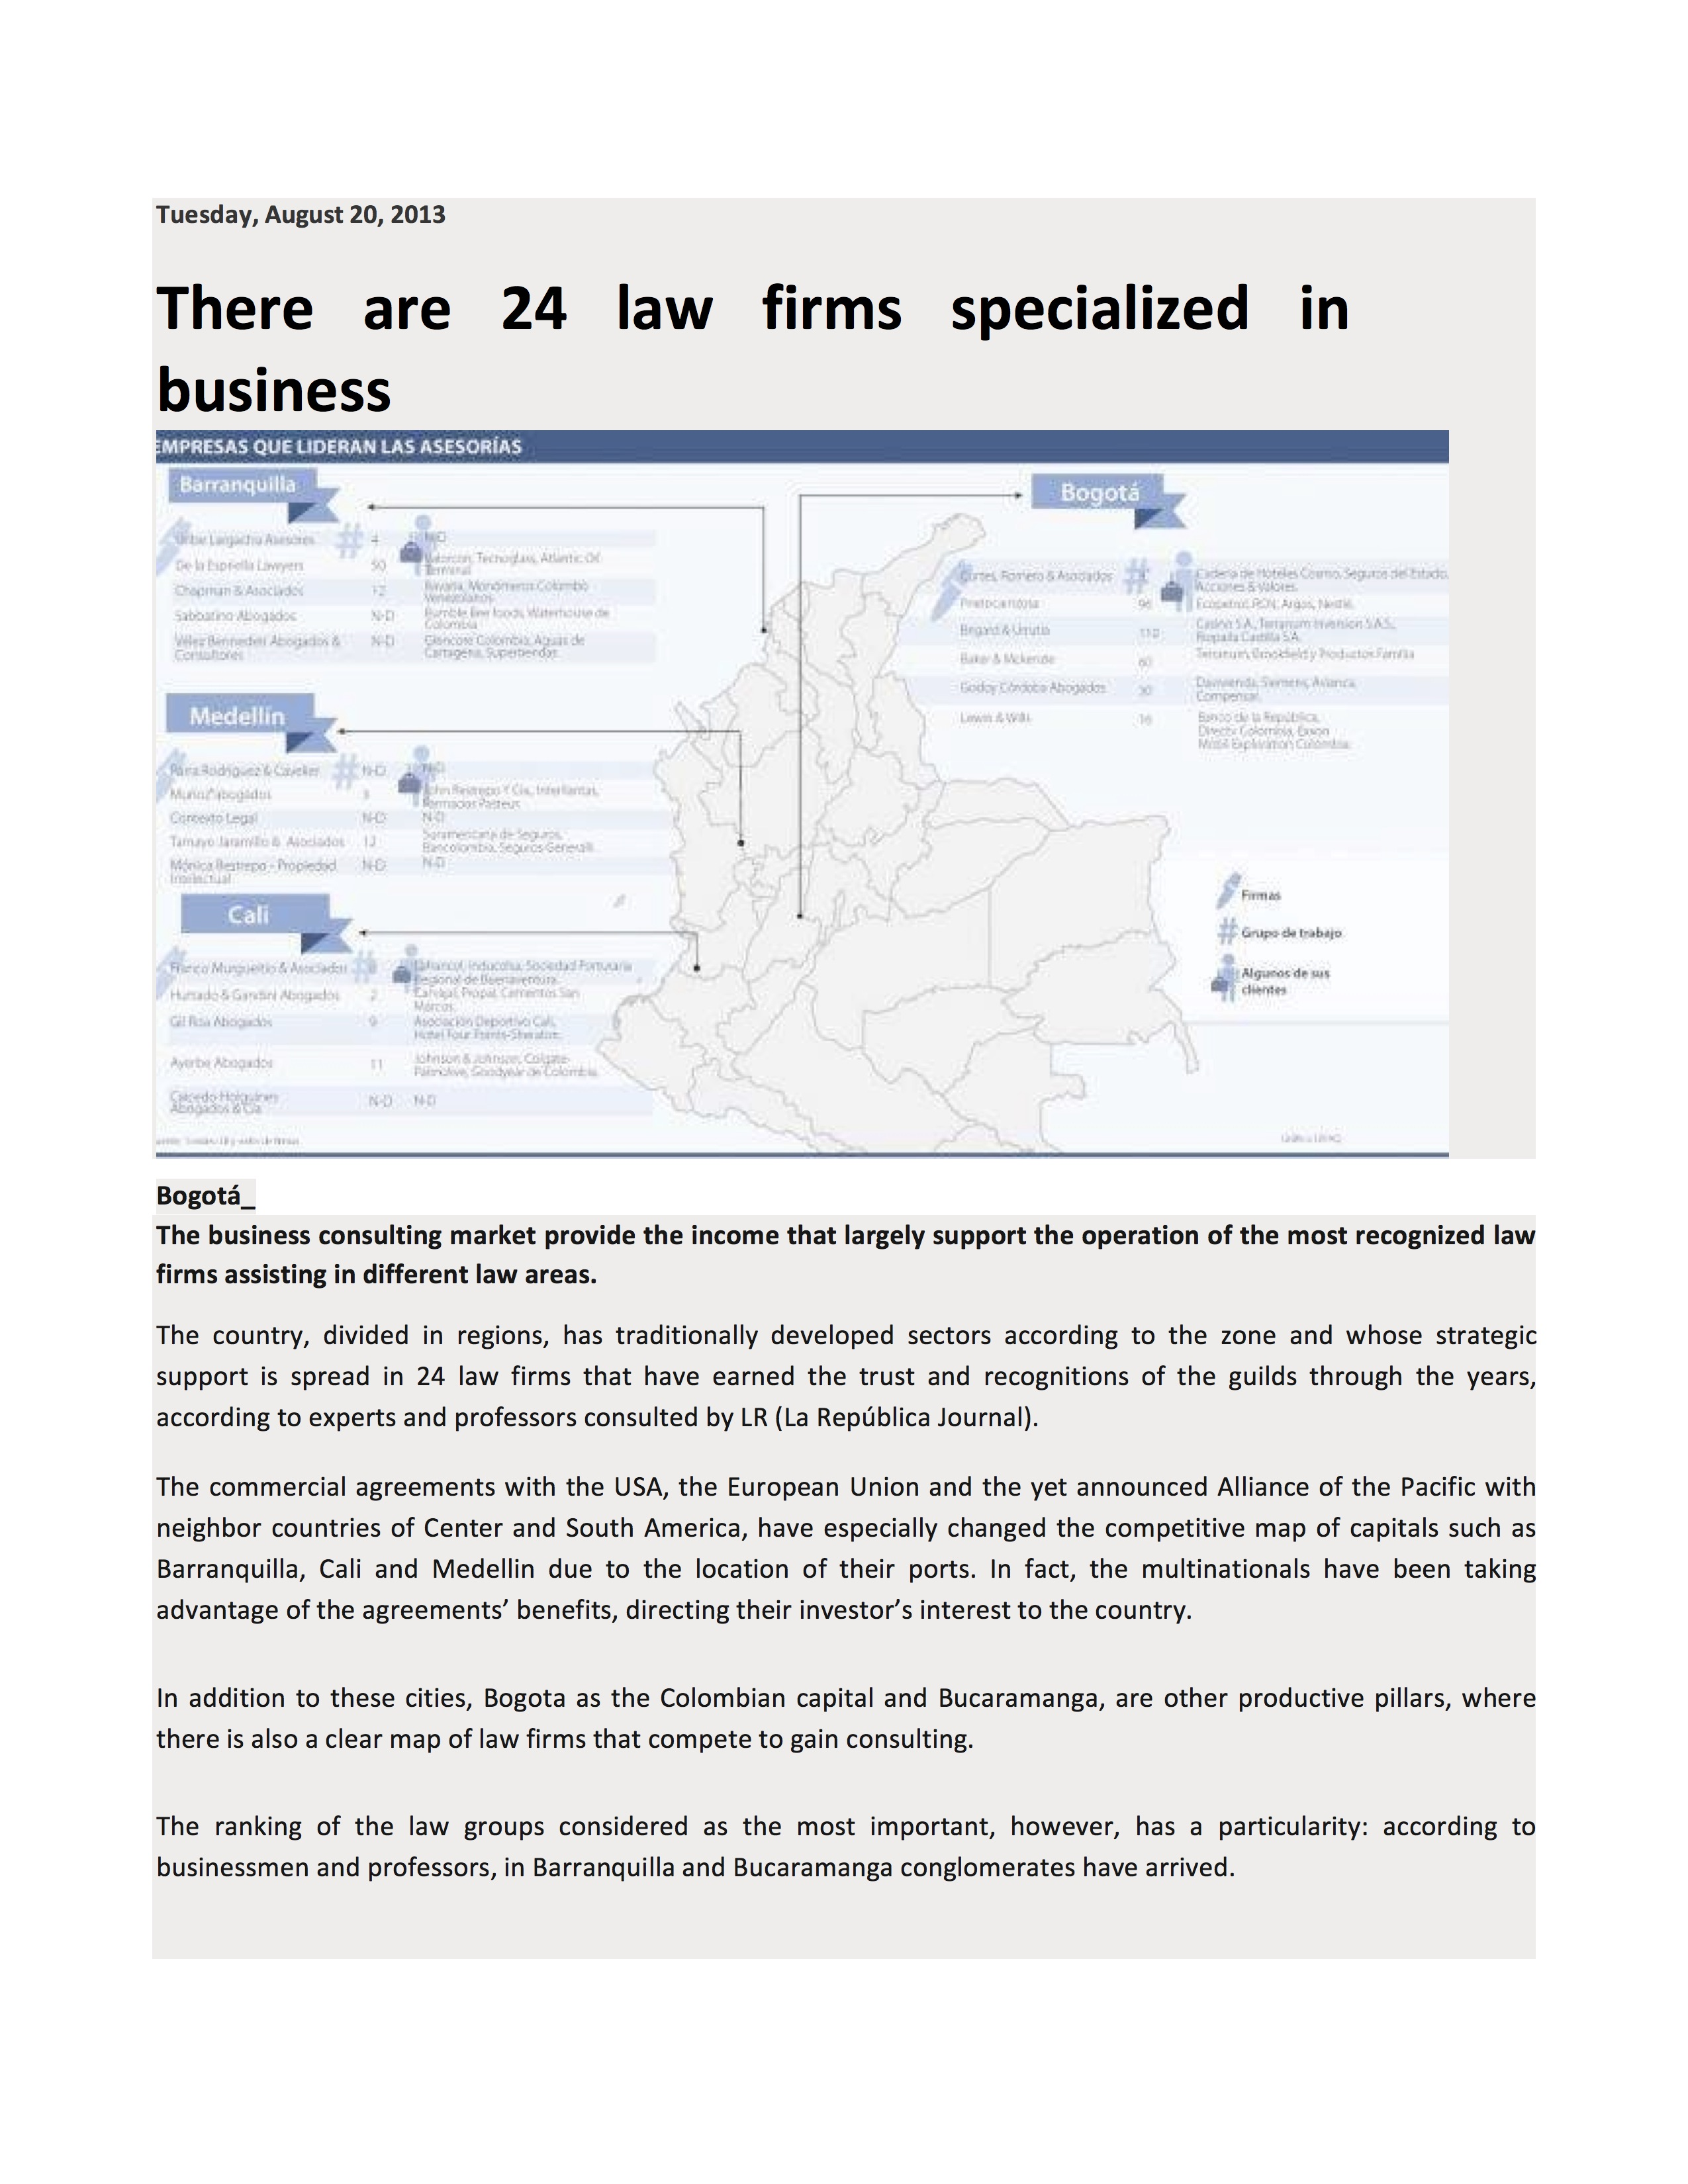 la-republica-there-are-24-law-firms-specialized-in-business1